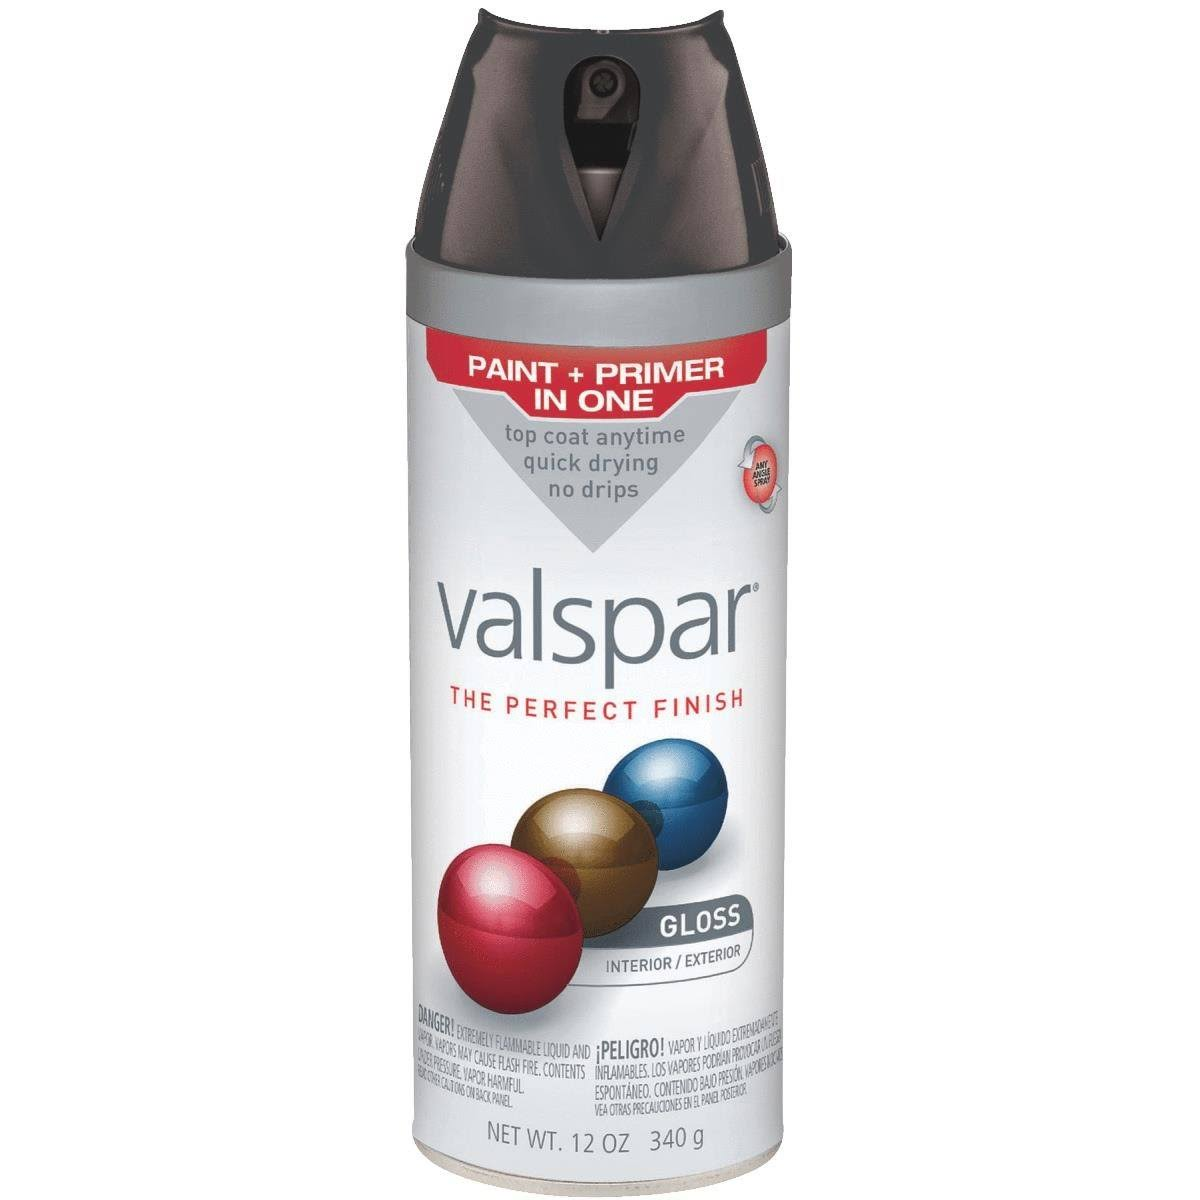 Valspar Paint & Primer In One Paint